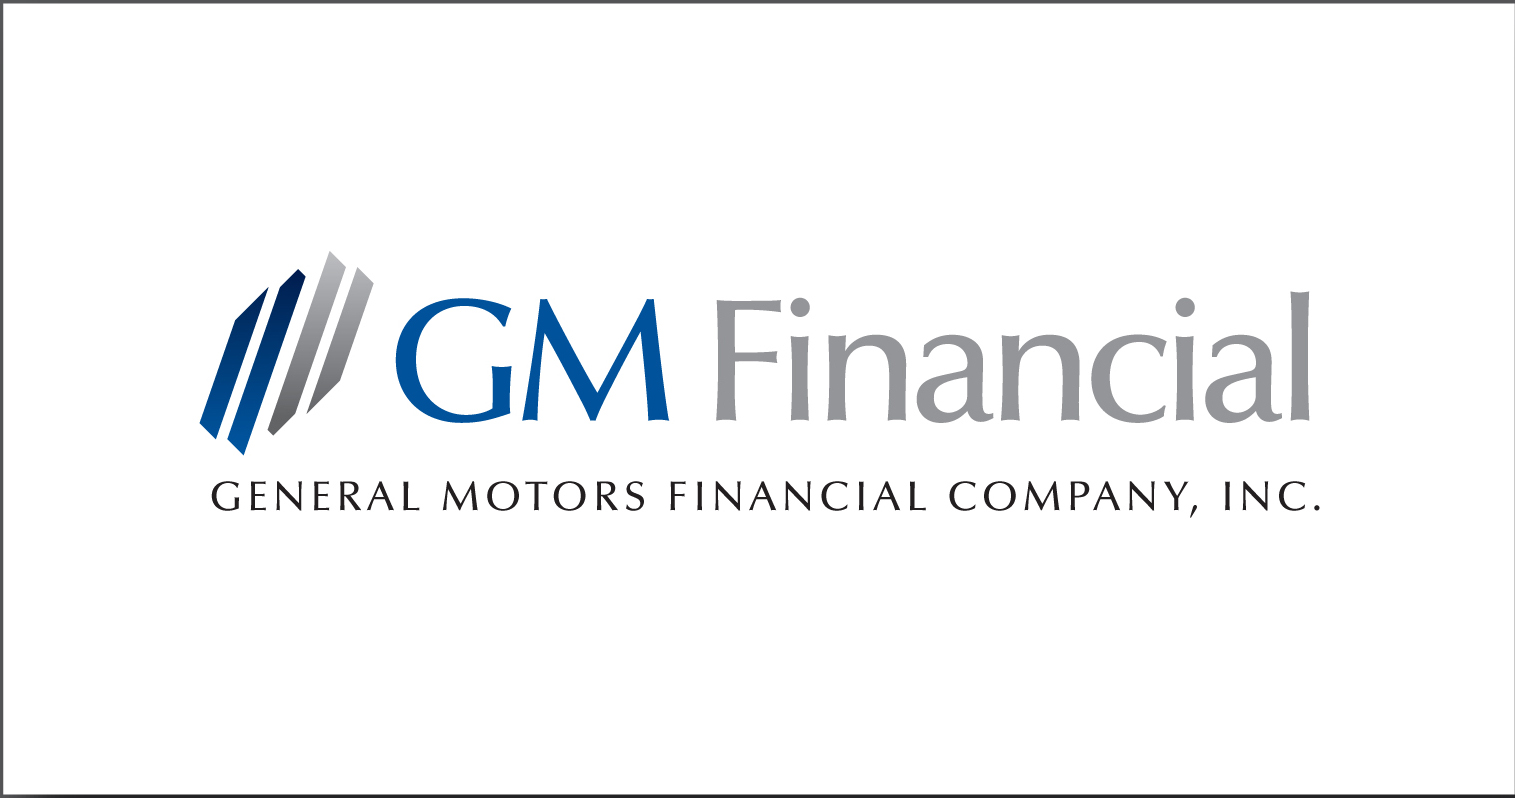 Gm financial reports earnings of 96 million digital dealer General motors financial company inc